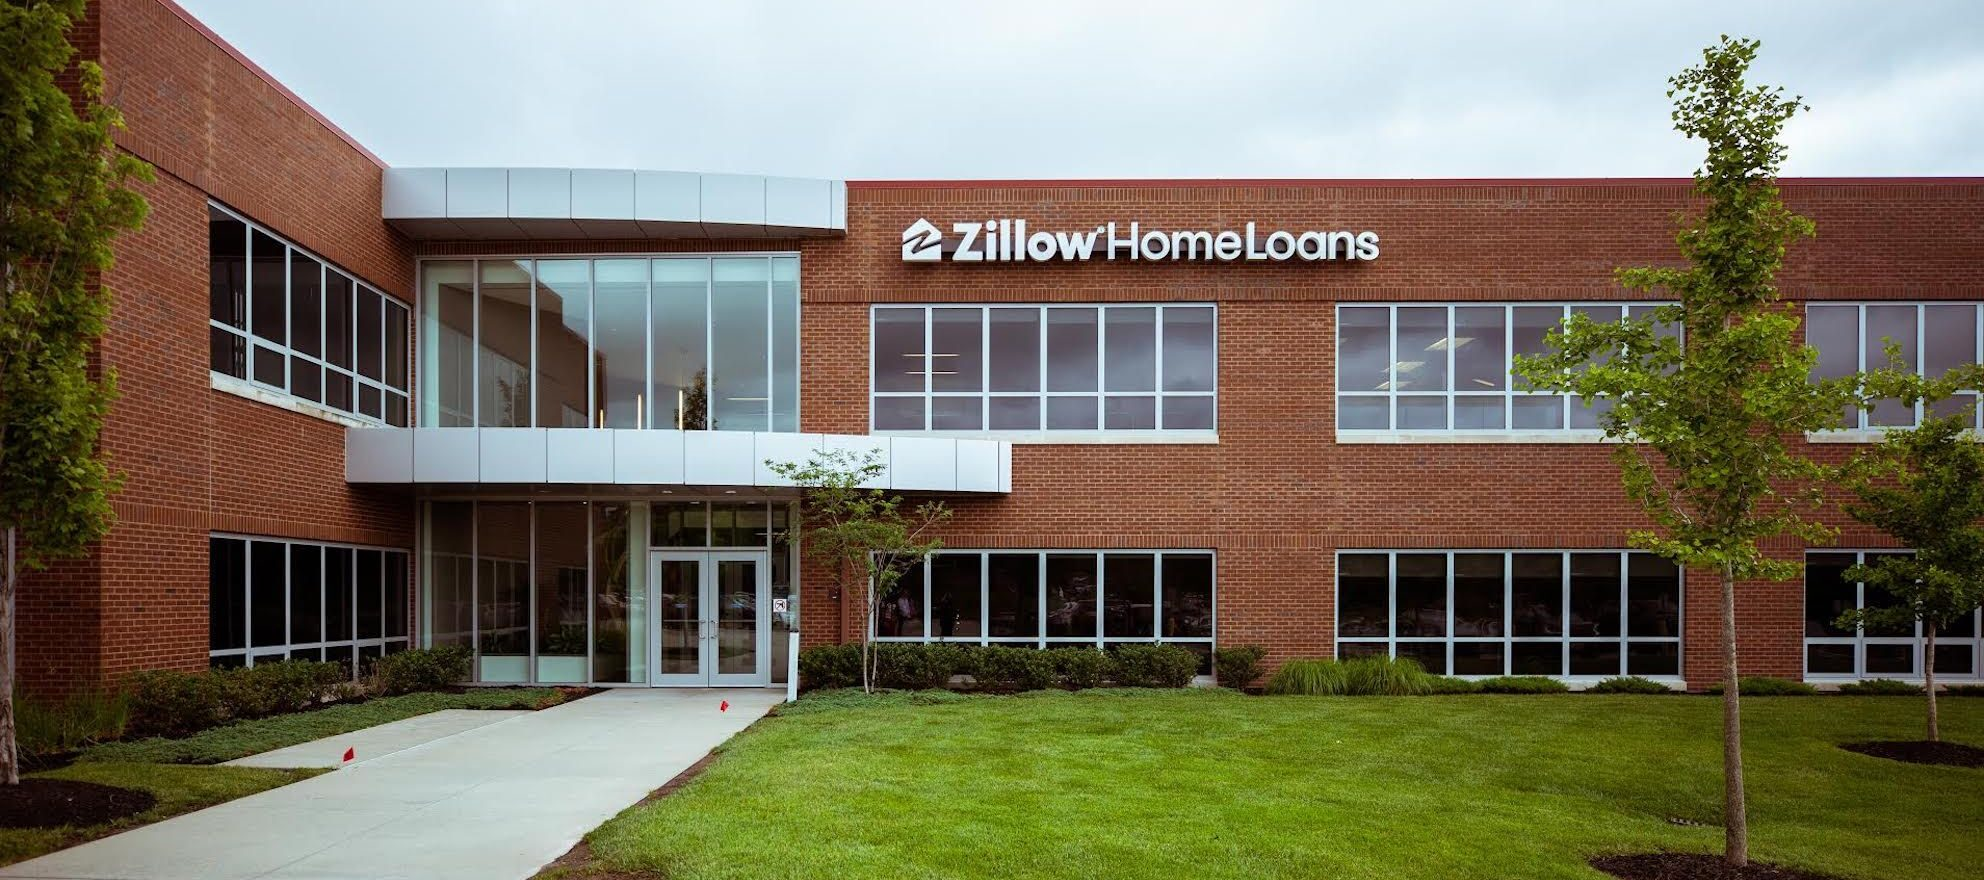 Zillow names new president of mortgage segment